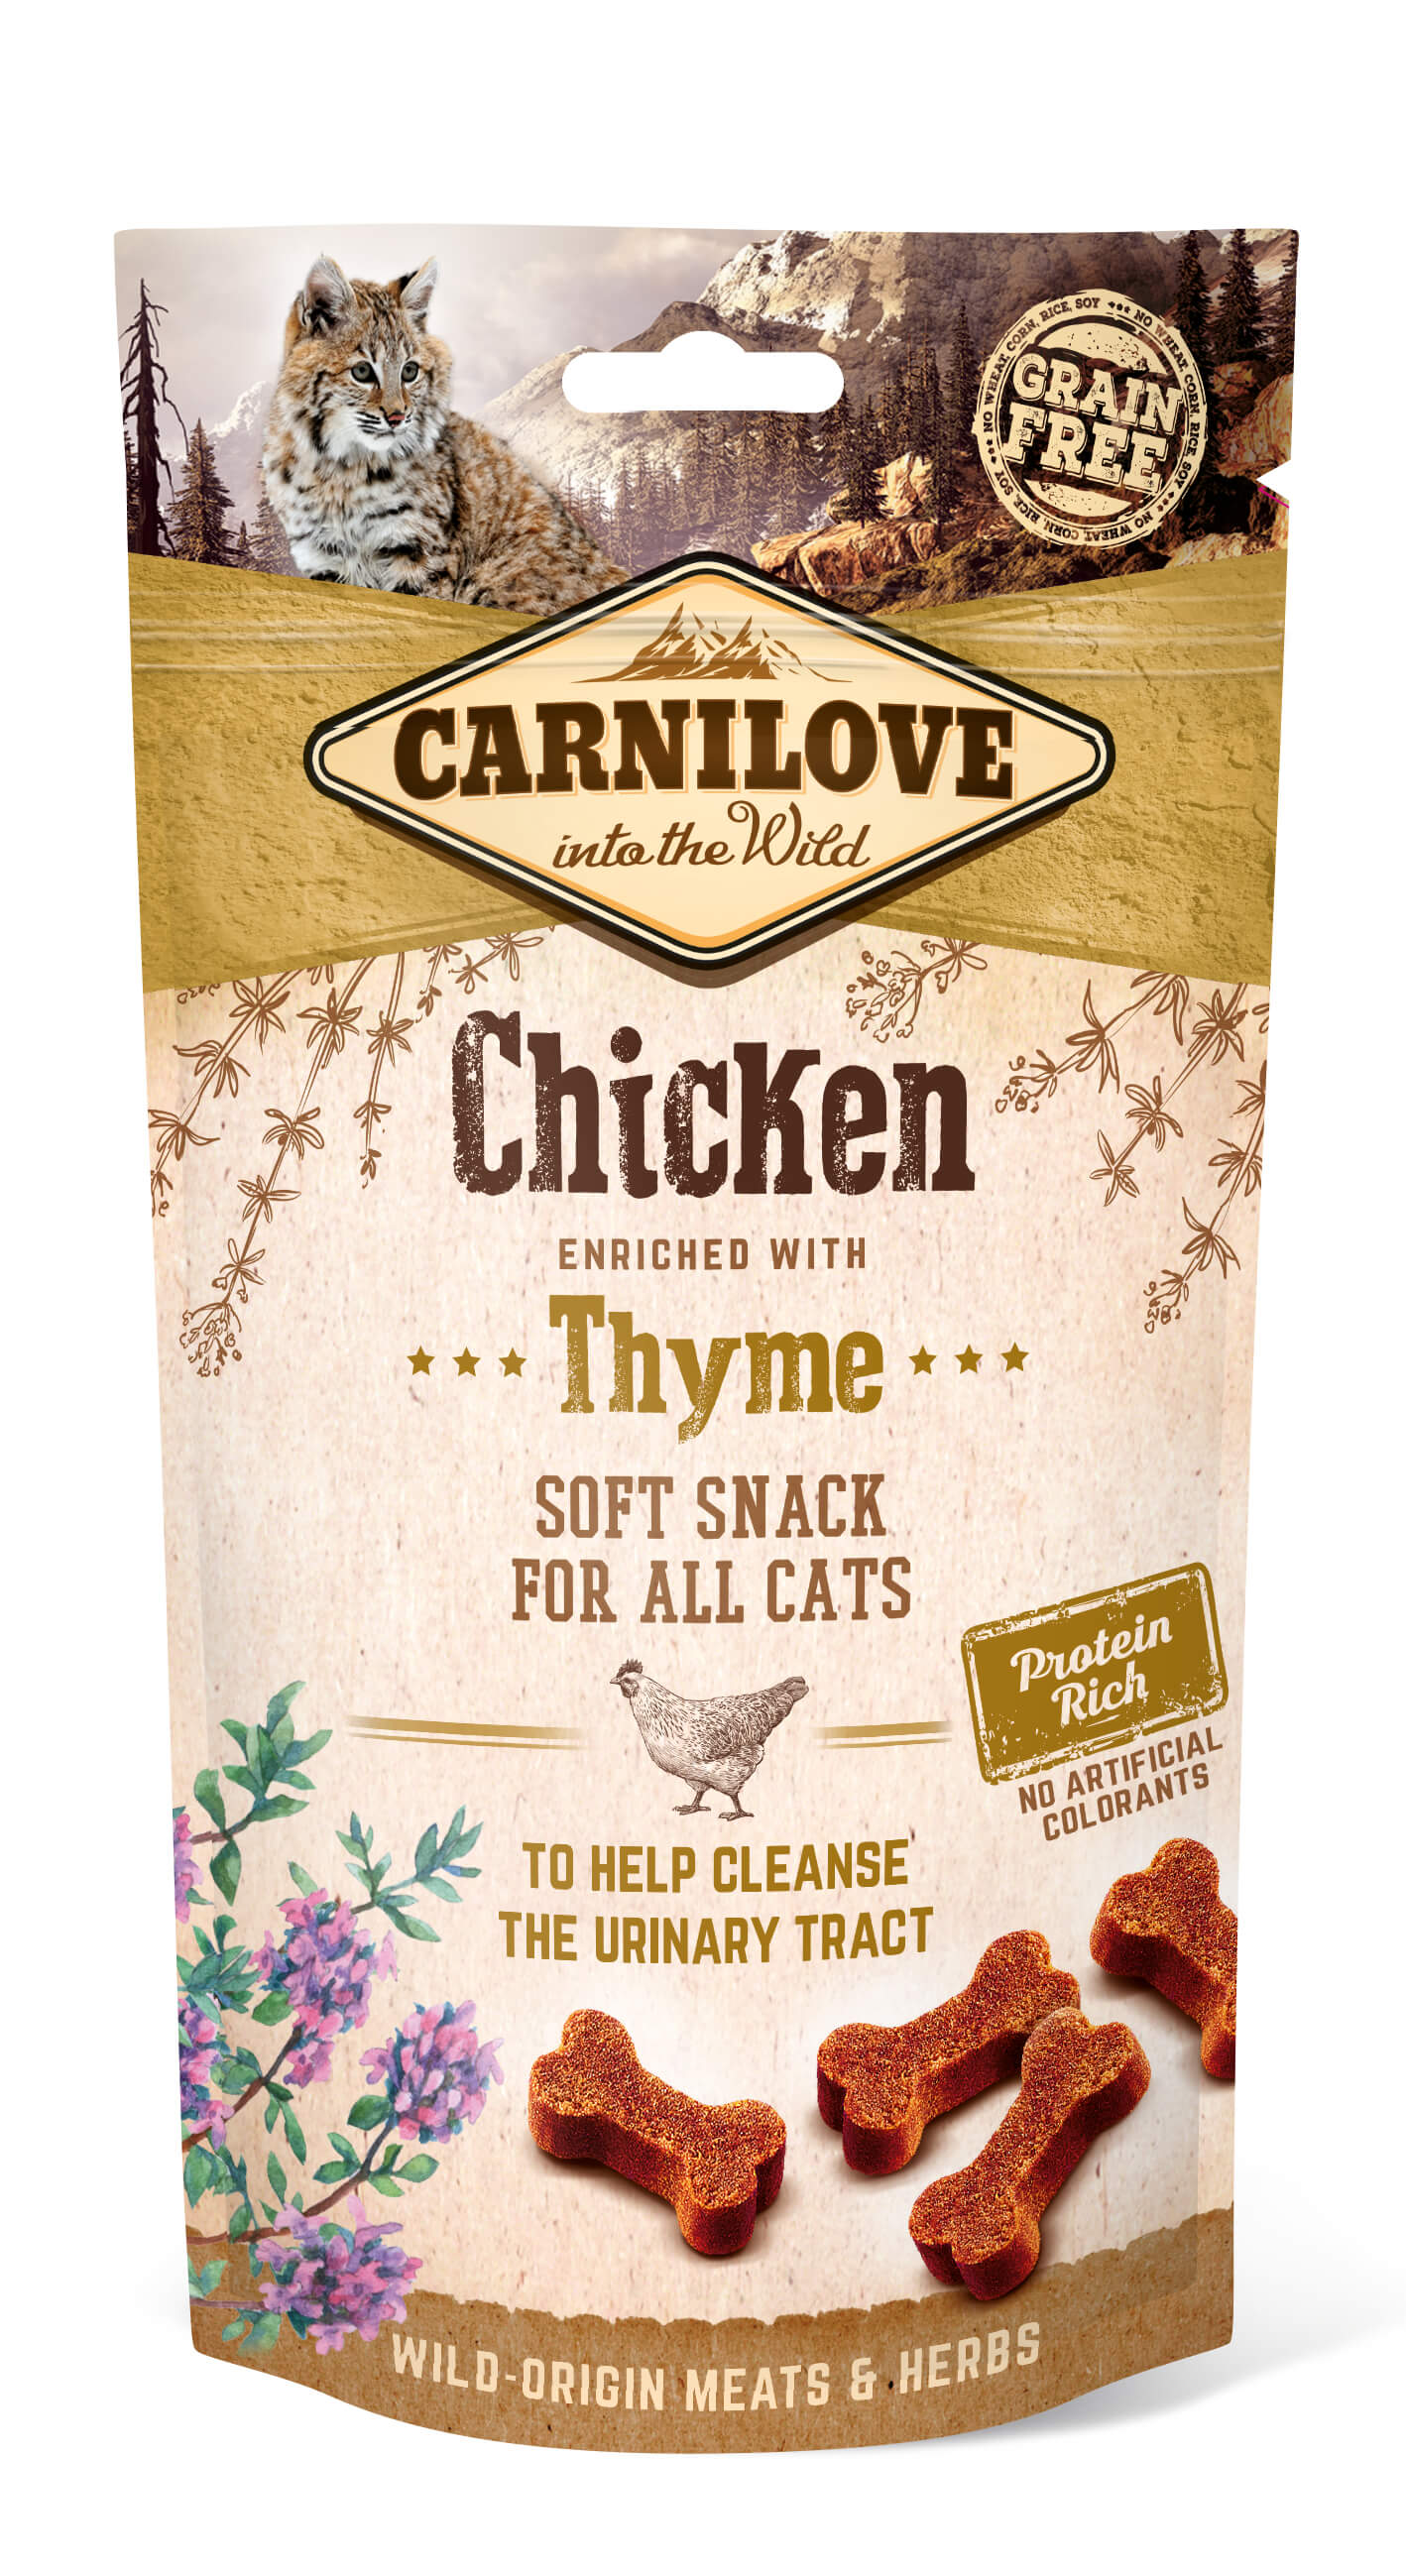 Carnilove Katze Soft Snack – Chicken with Thyme